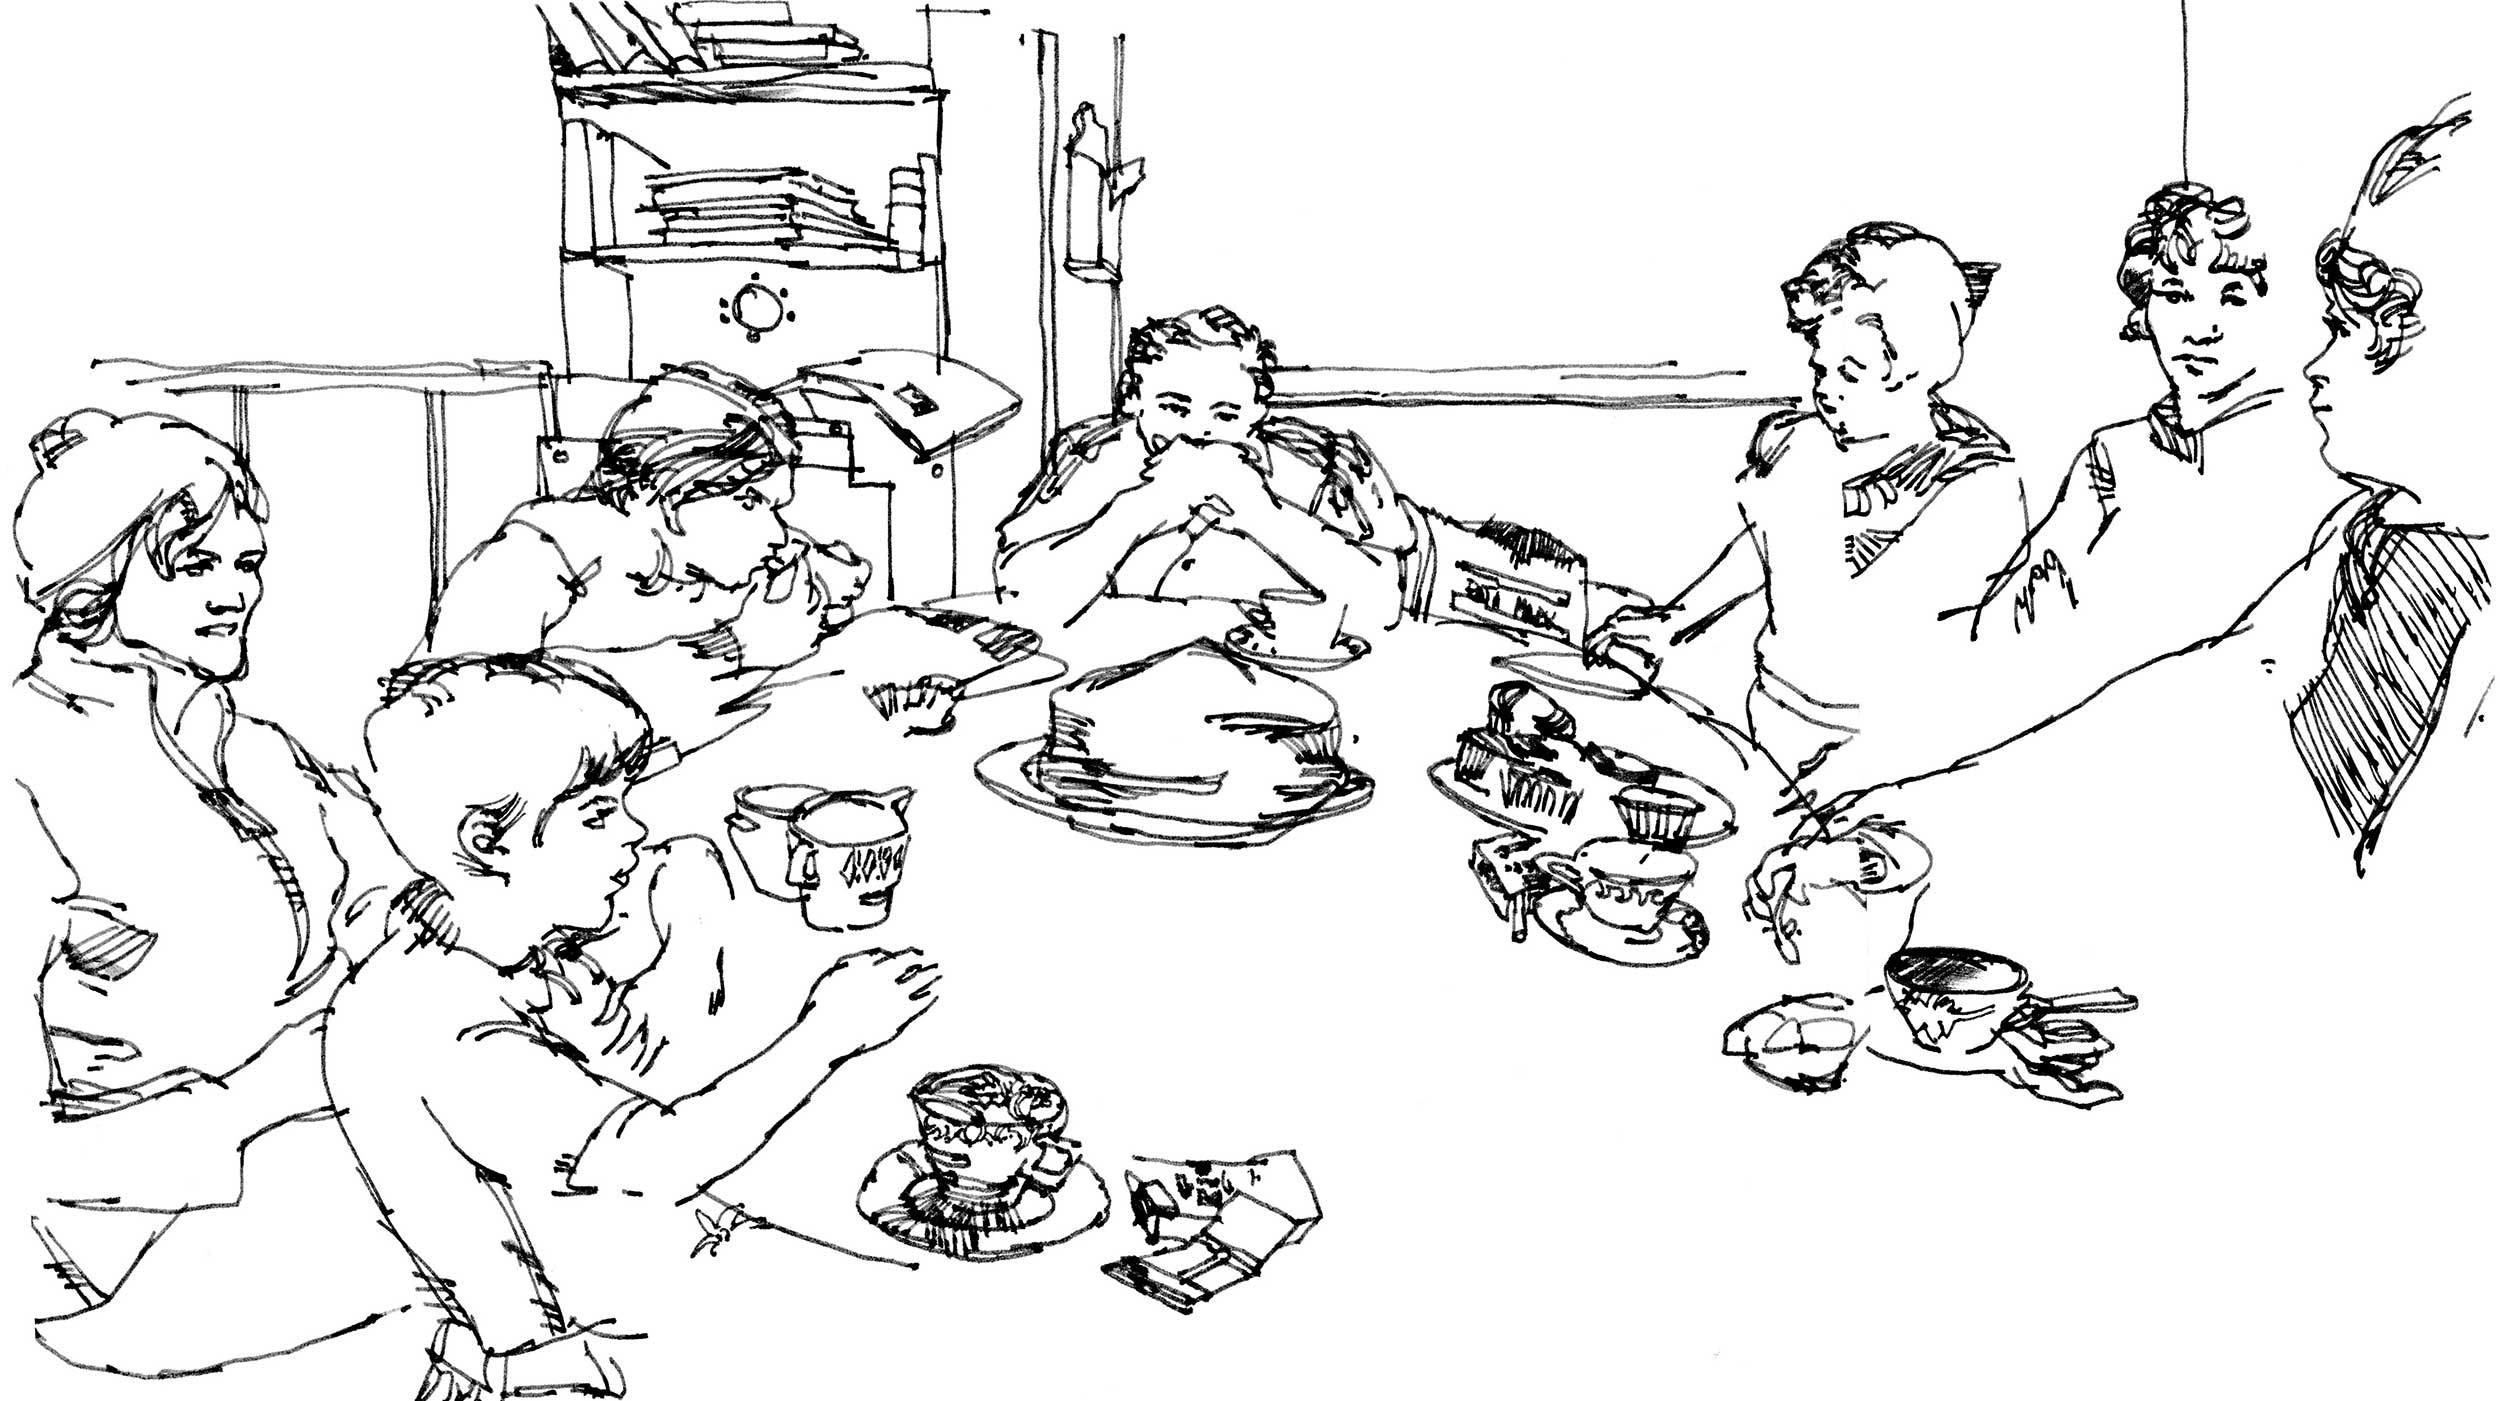 Ink drawing of family gathered around the dinner table